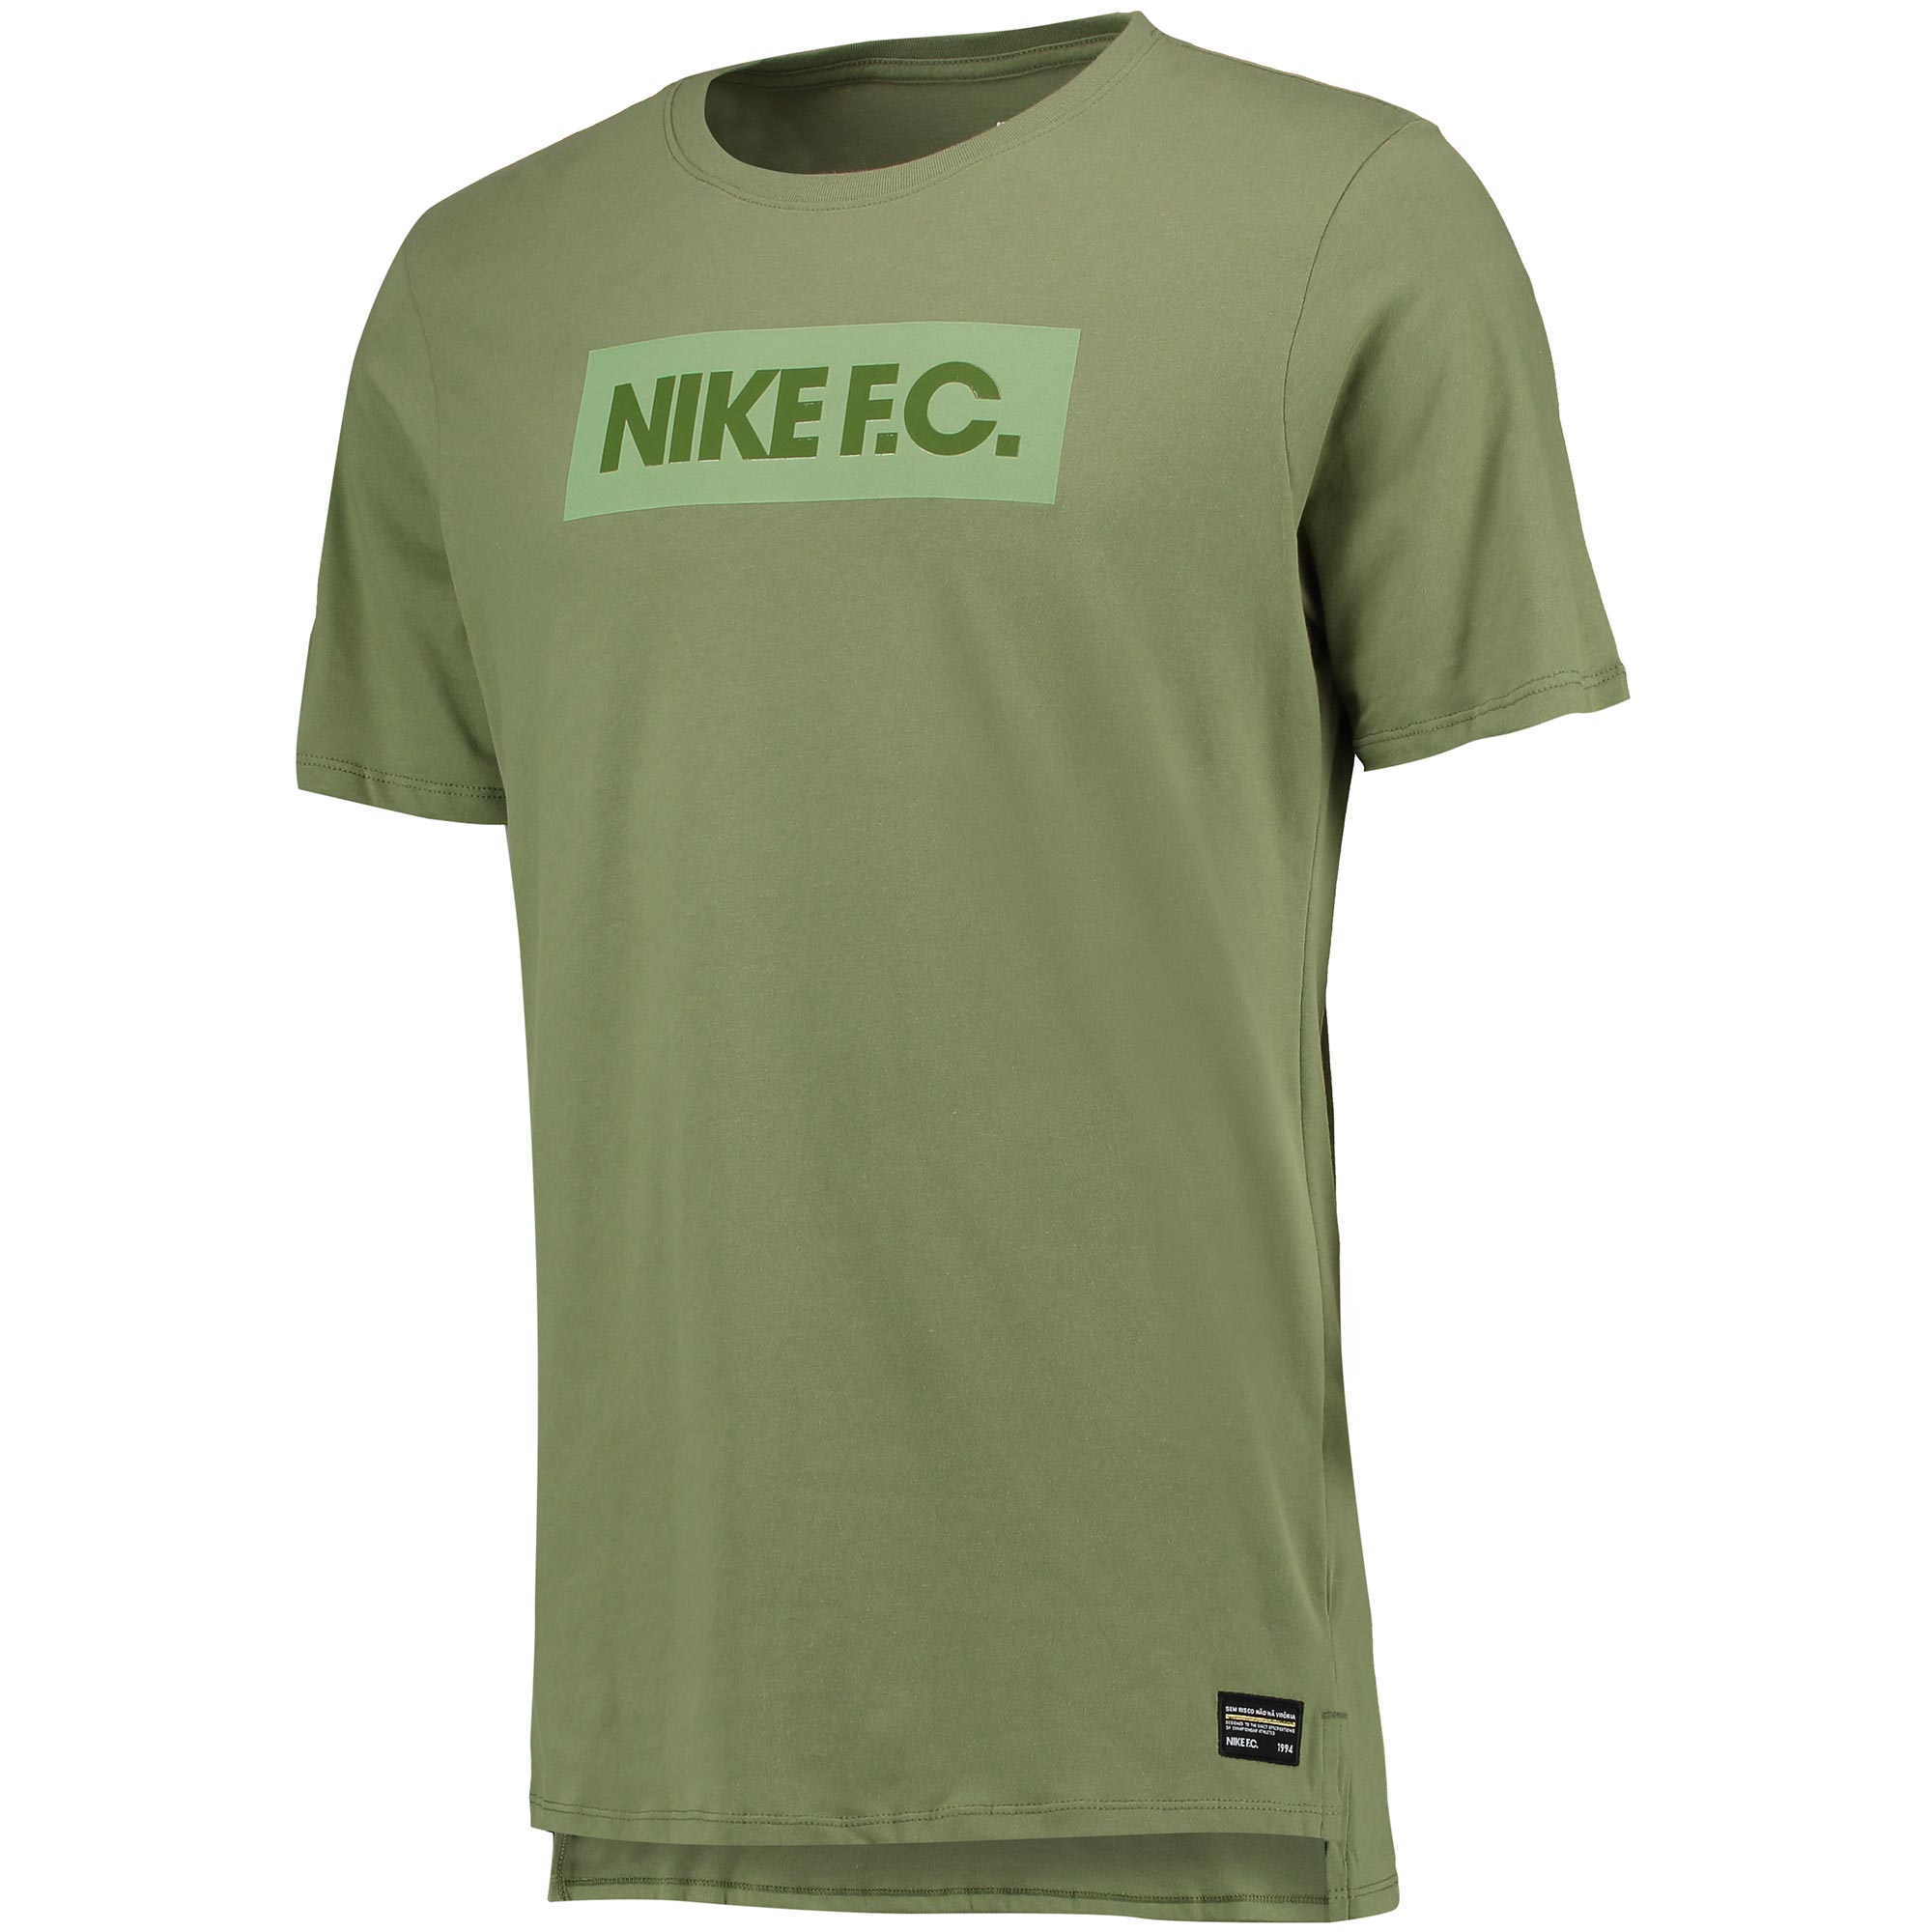 Nike F.C. T-Shirt - Palm Green